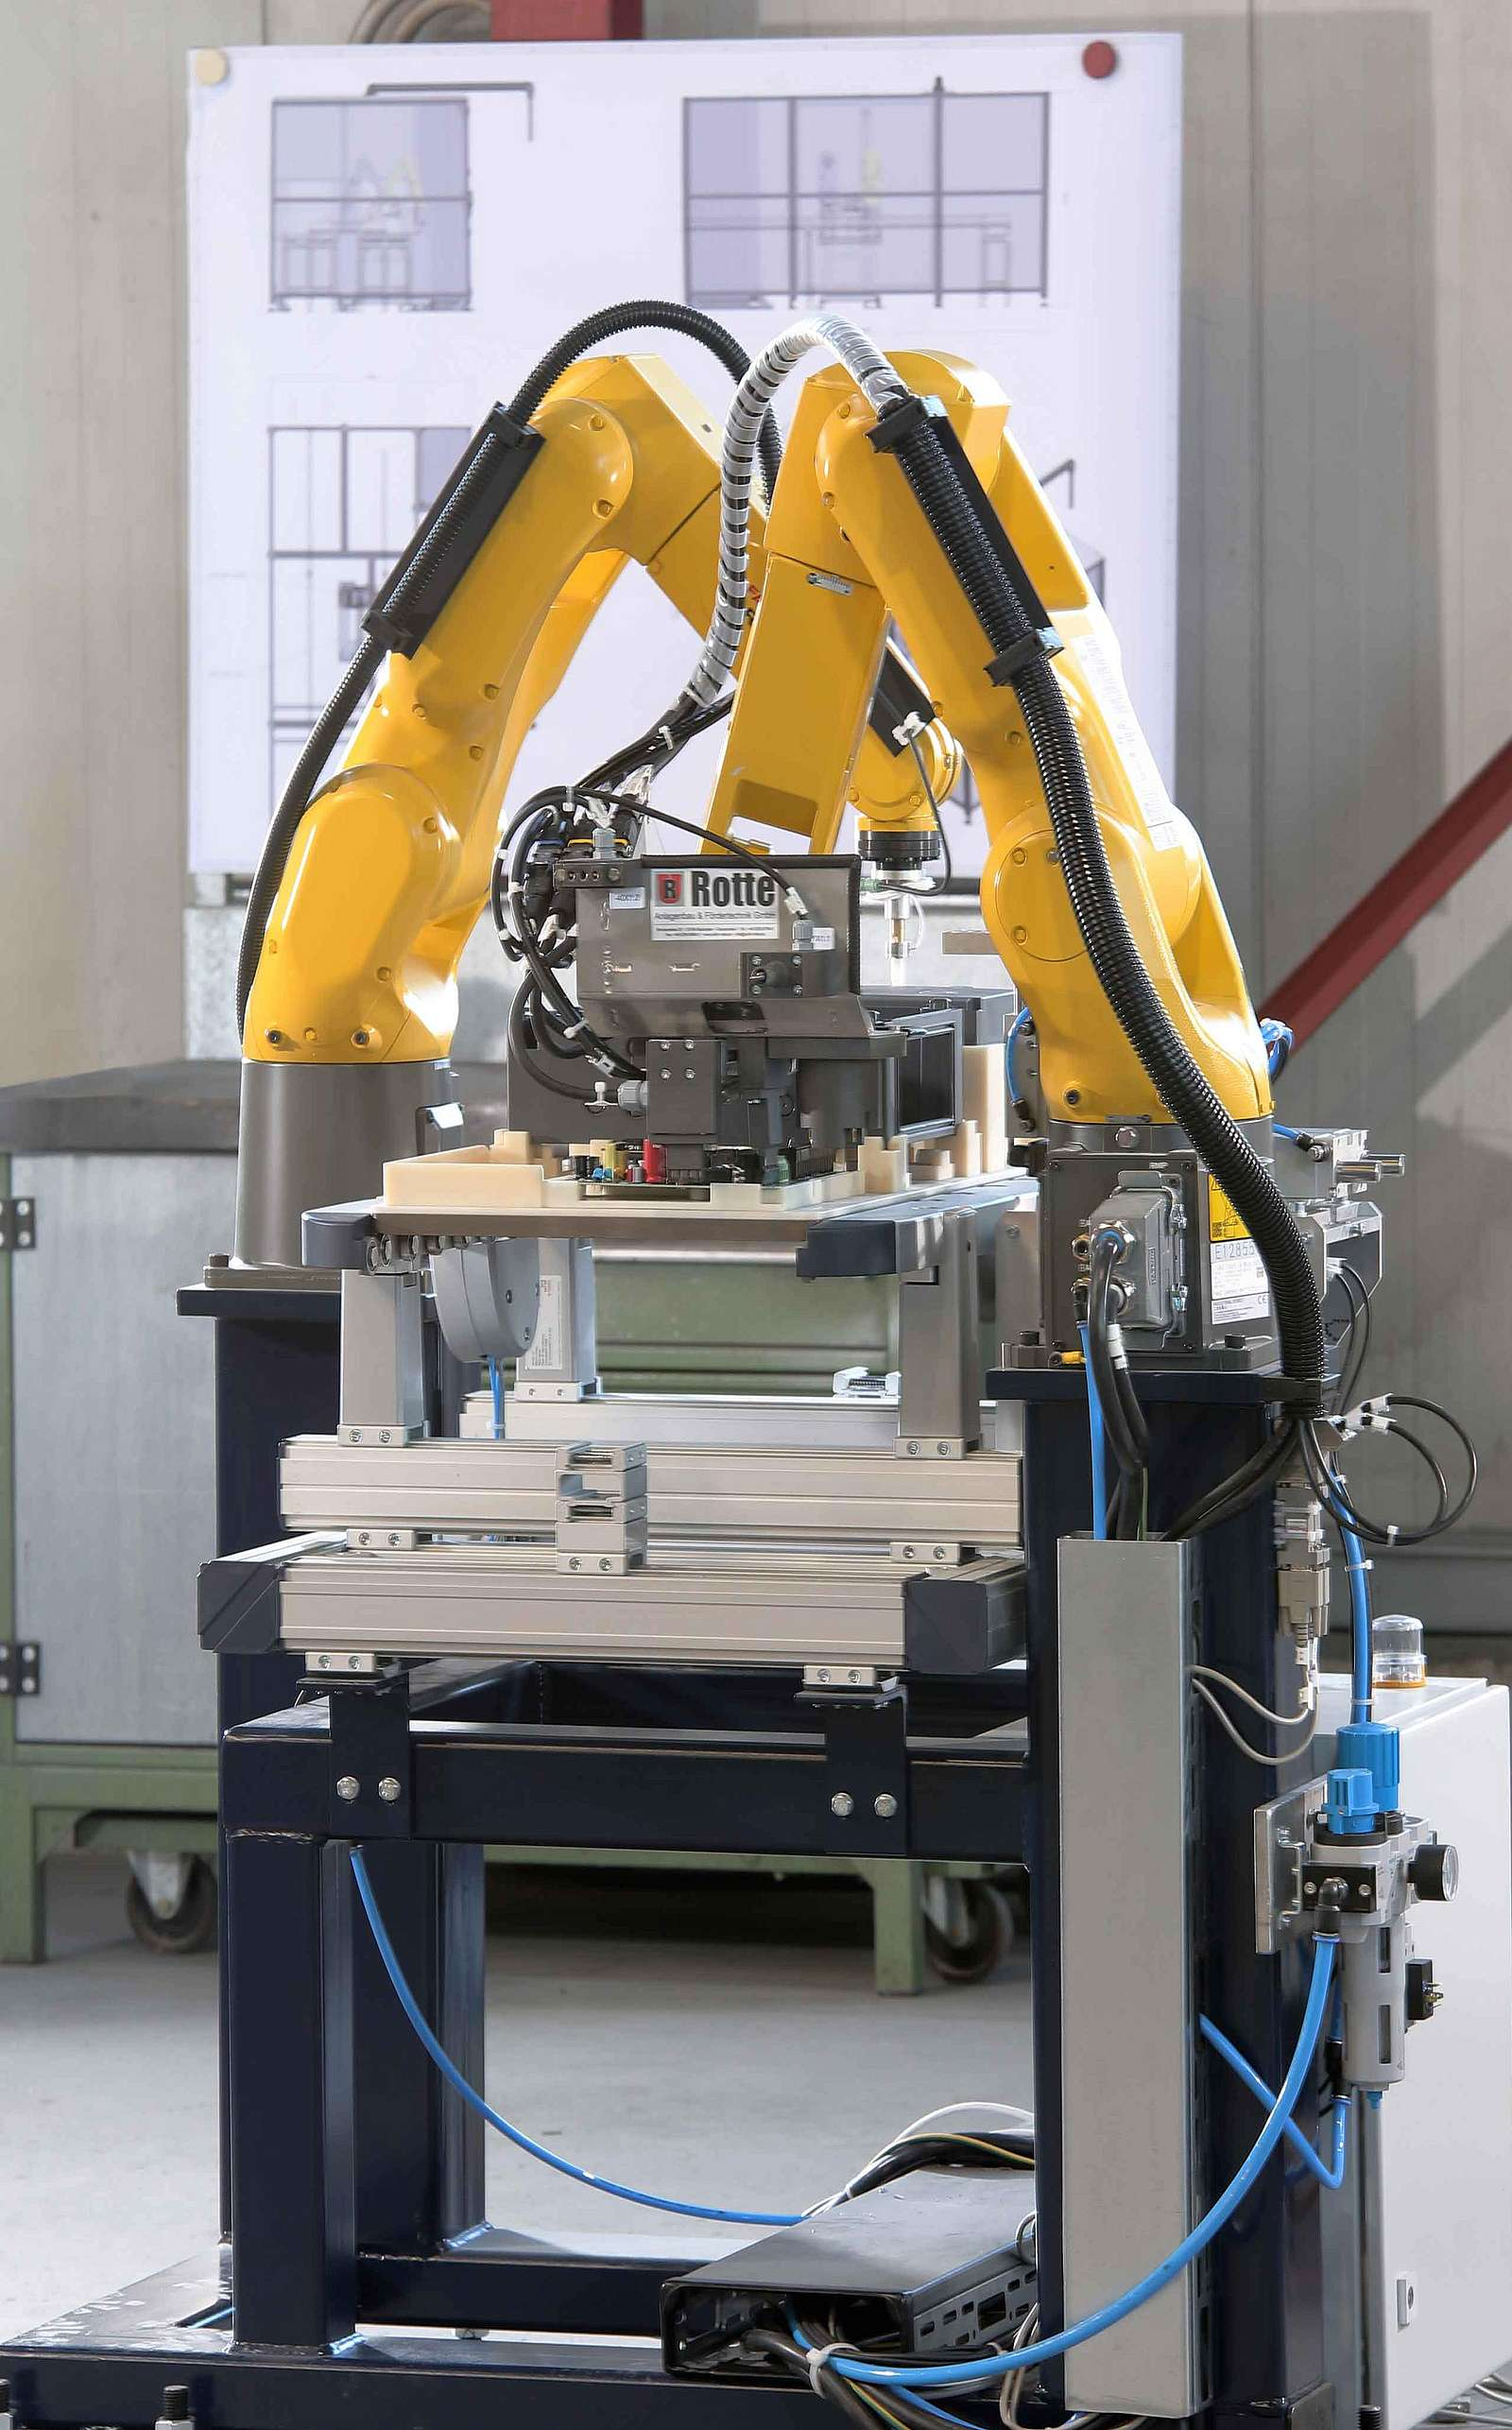 Robot cell for quality control